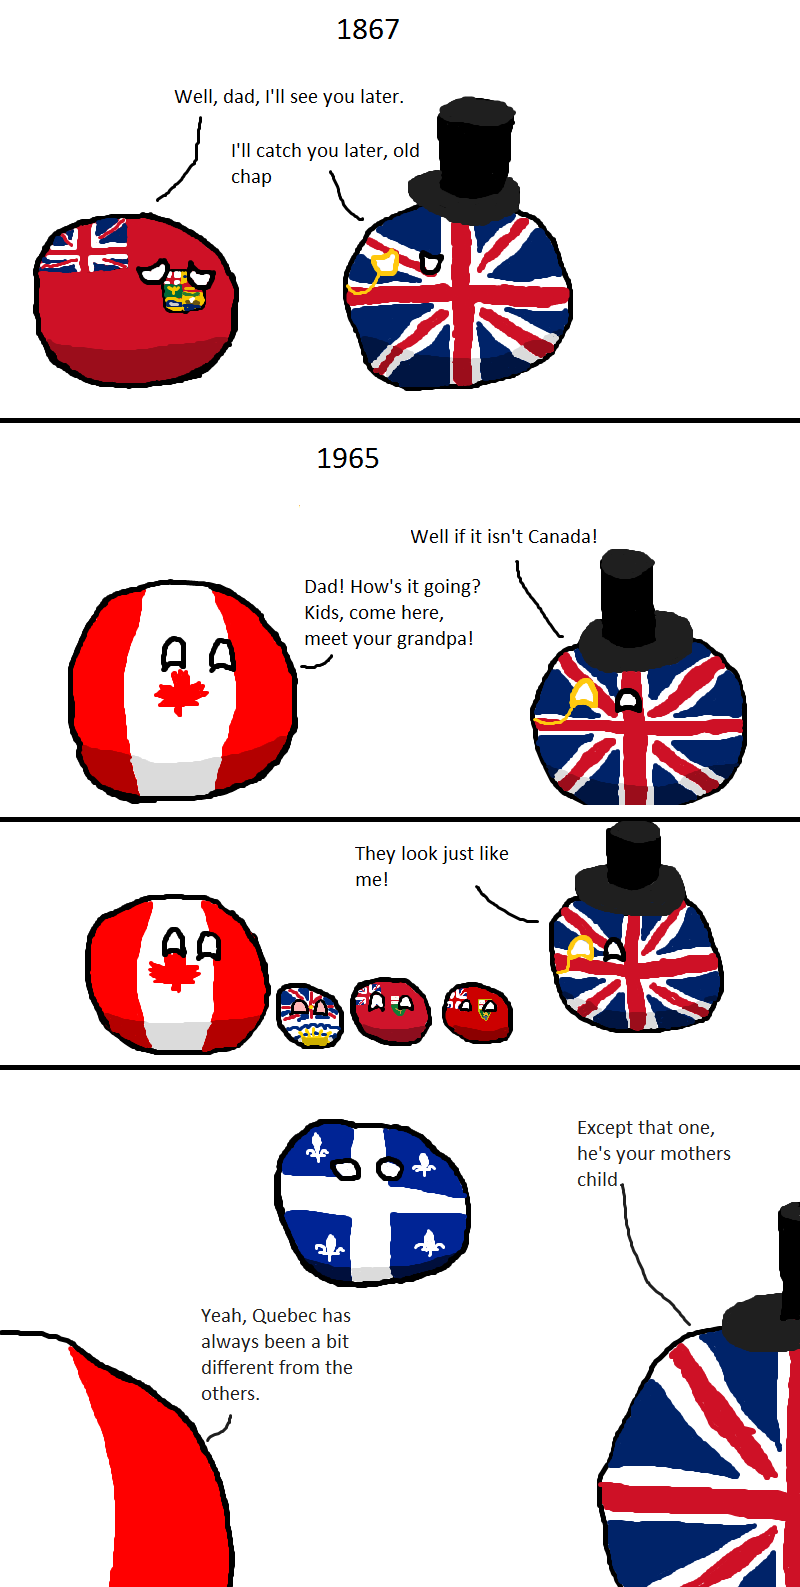 Daily Polandball: Britain Visits His Grandchildren.